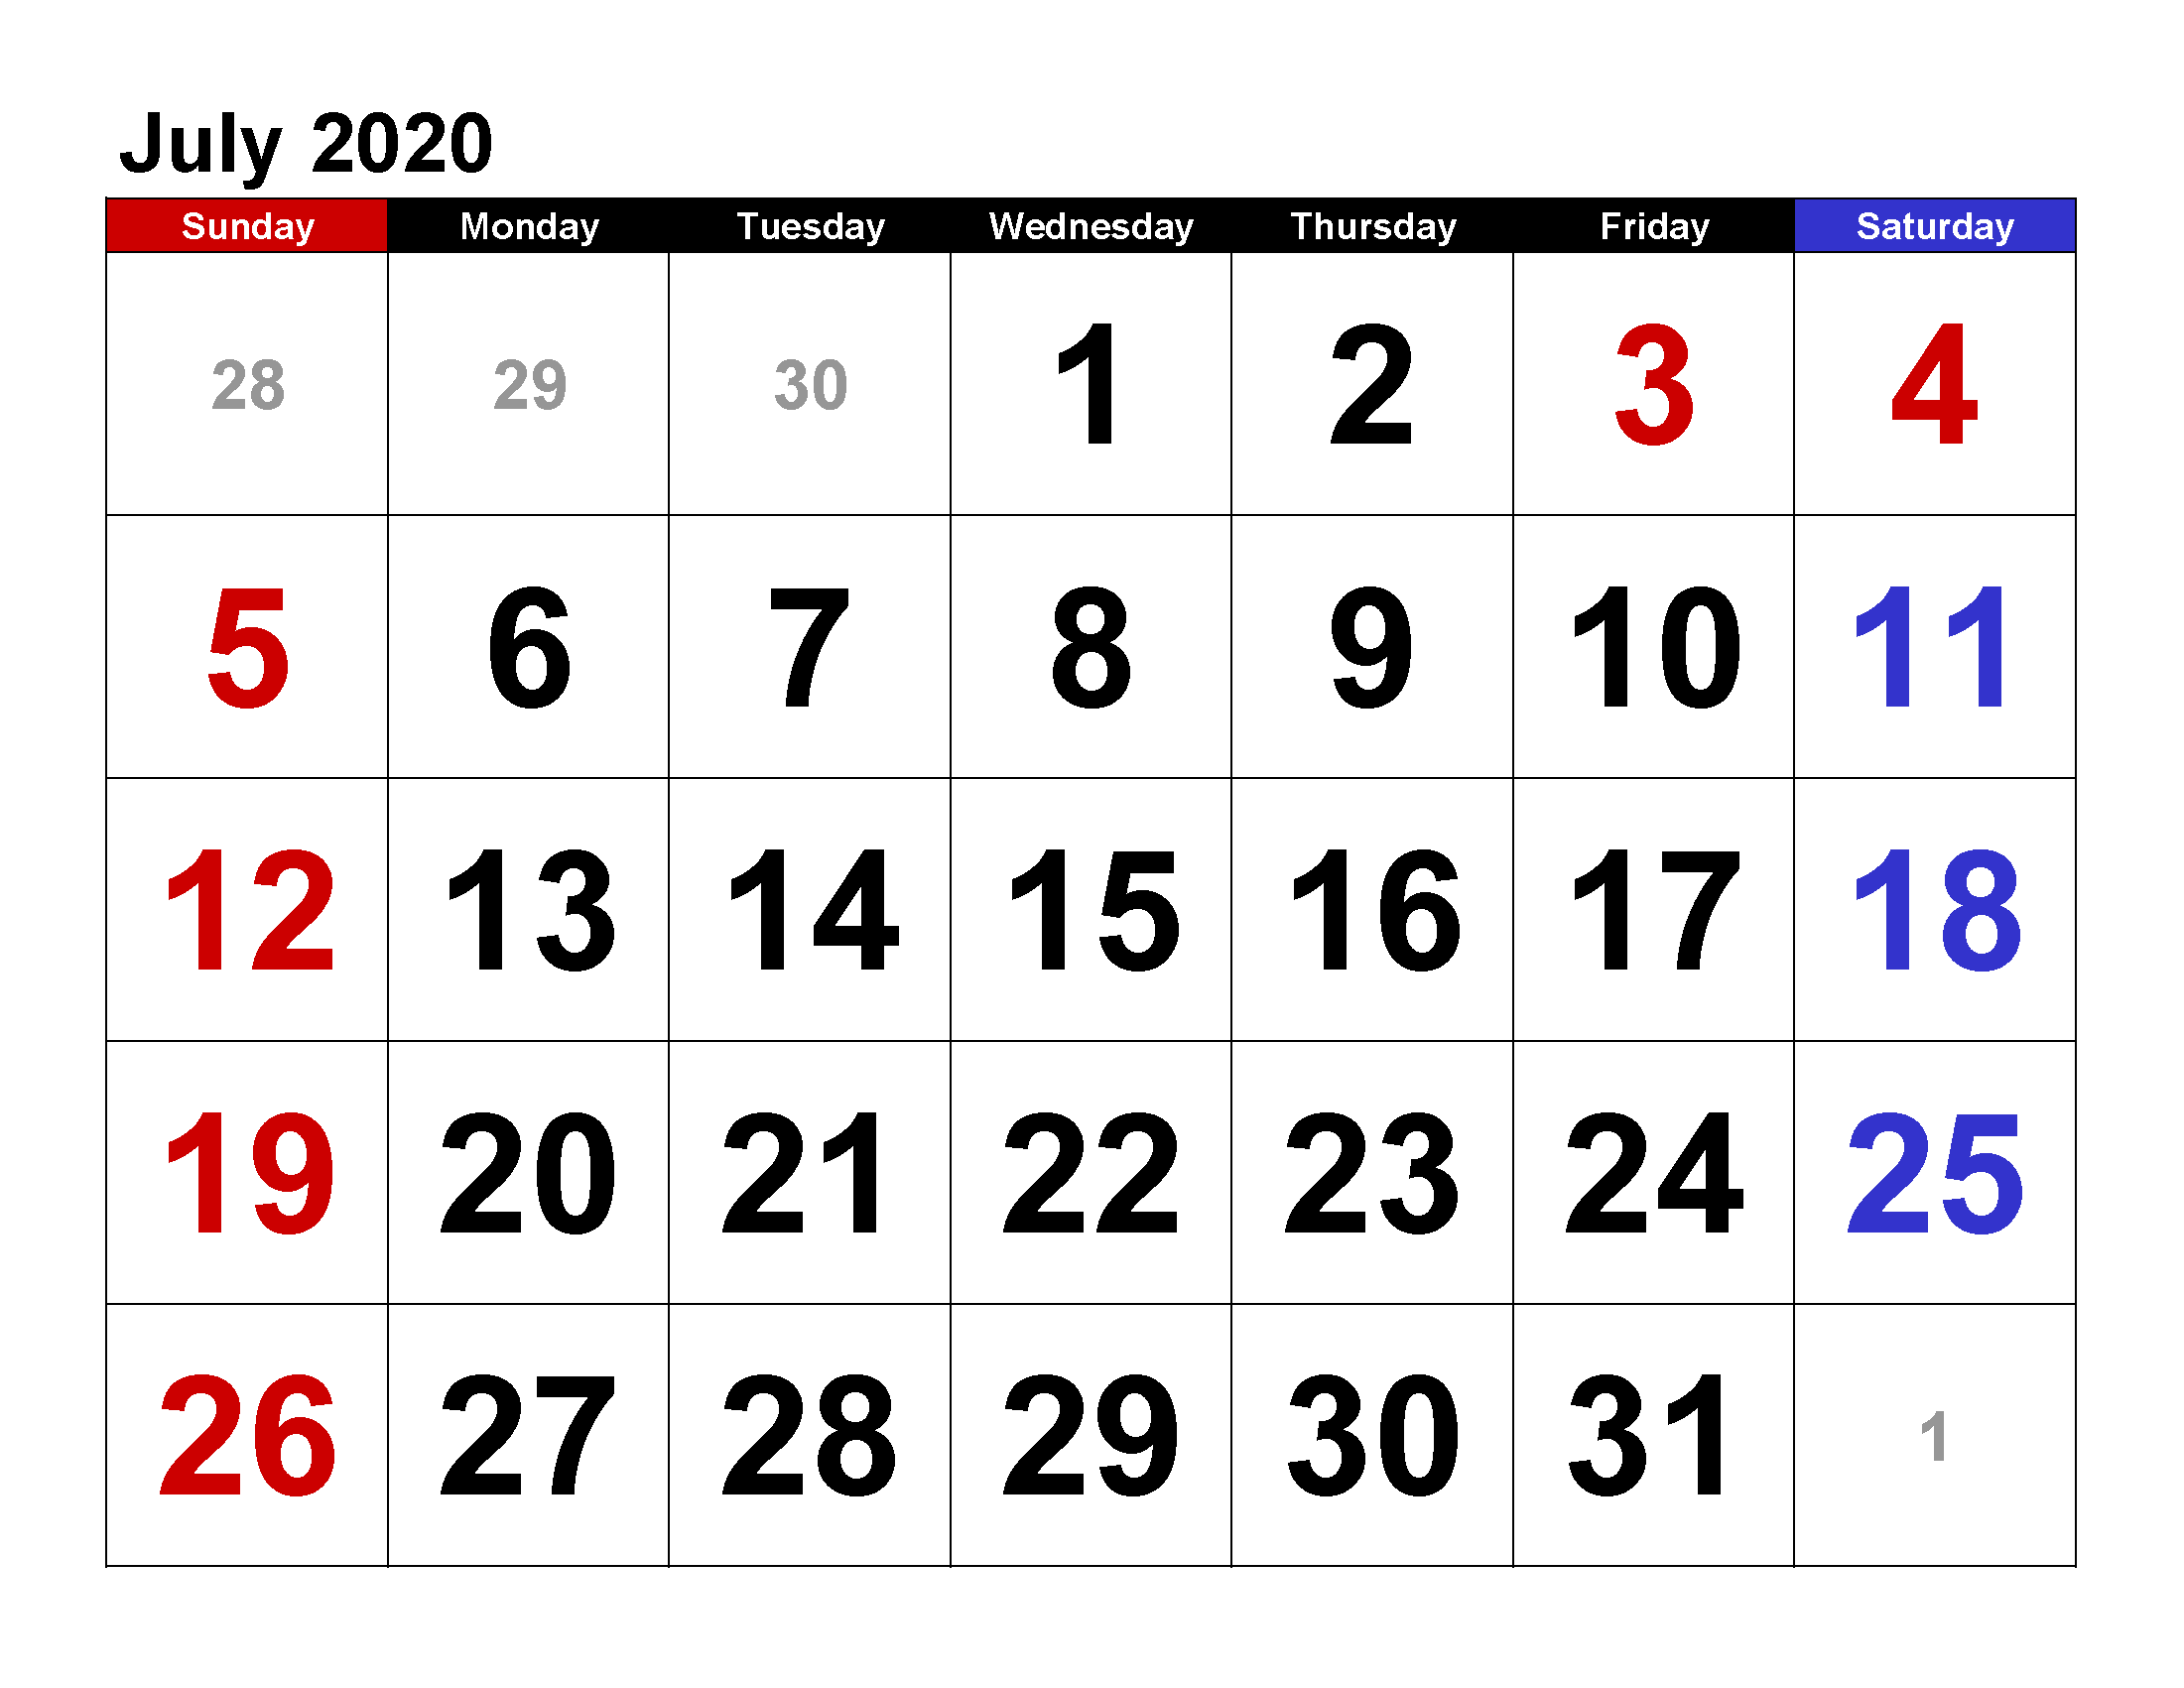 Printable Calendar Template July 2020 Calendar large numerals